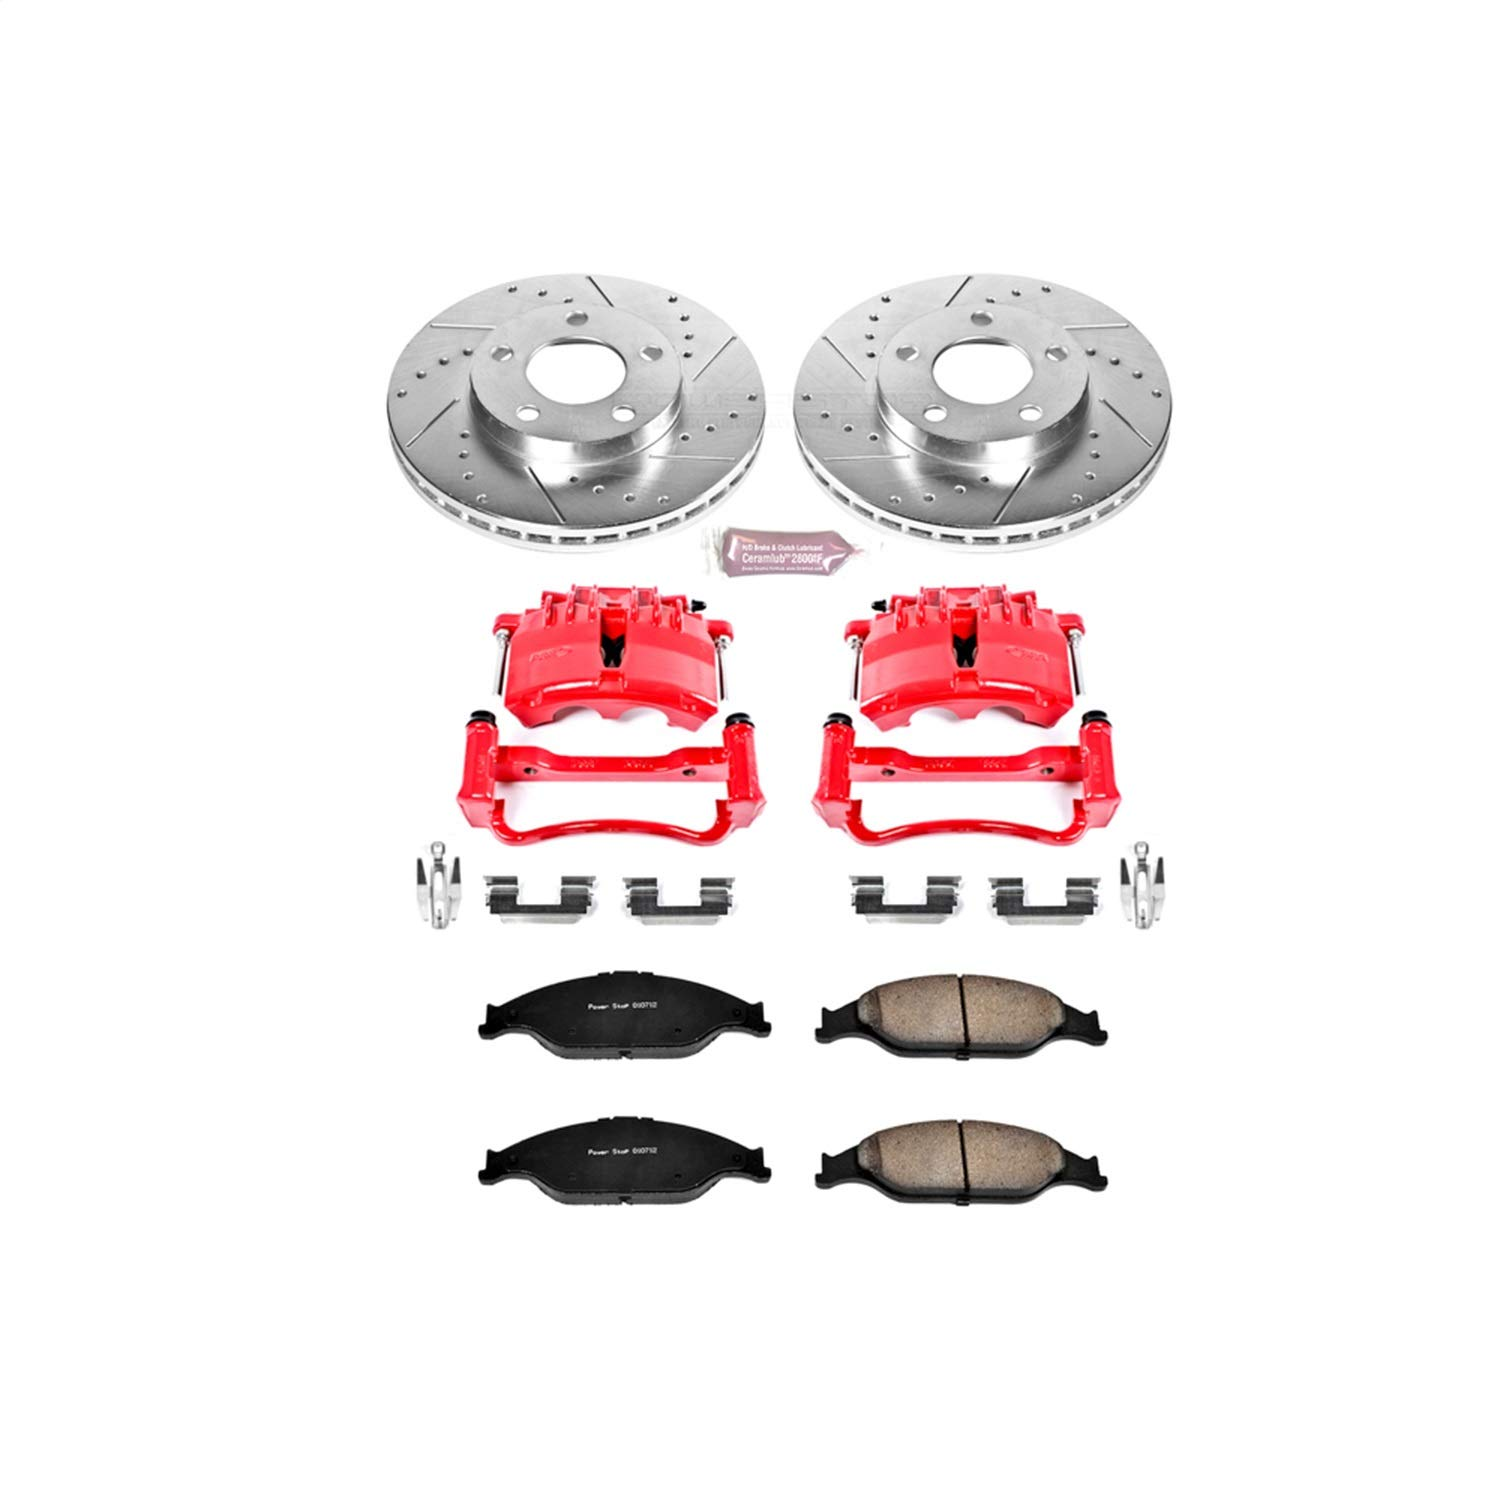 Power Stop KC1301A 1-Click Performance Brake Kit with Caliper, Front Only by POWERSTOP